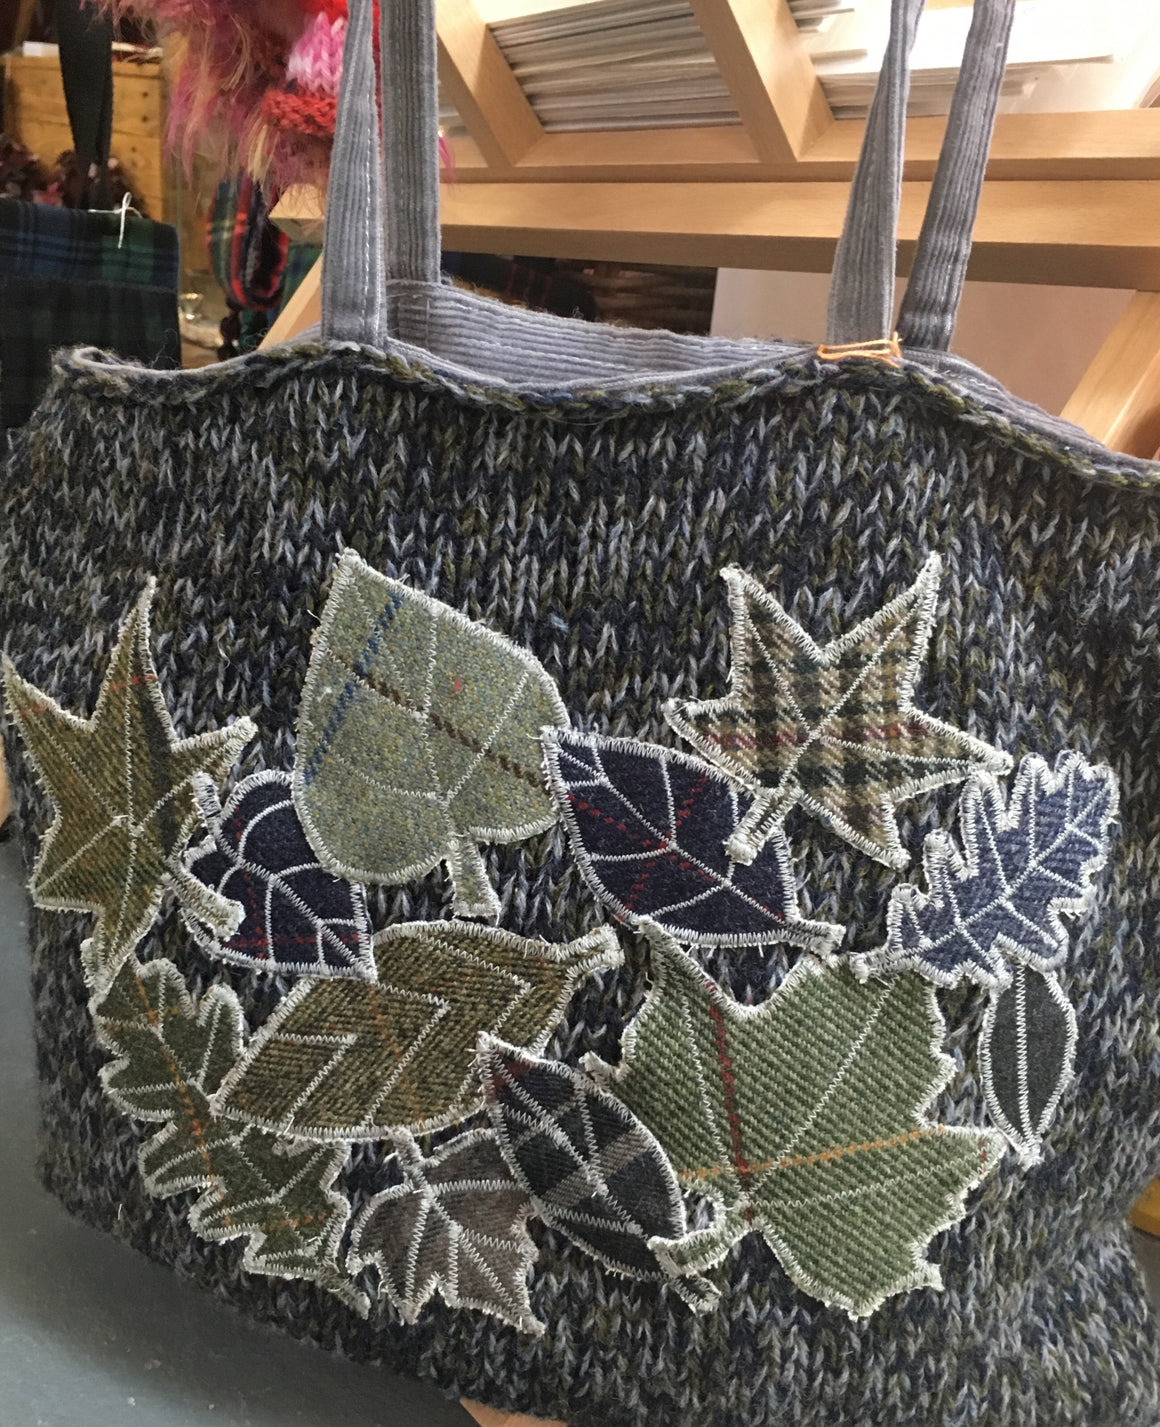 Grey knitted shoulder bag with leaf appliqué detail